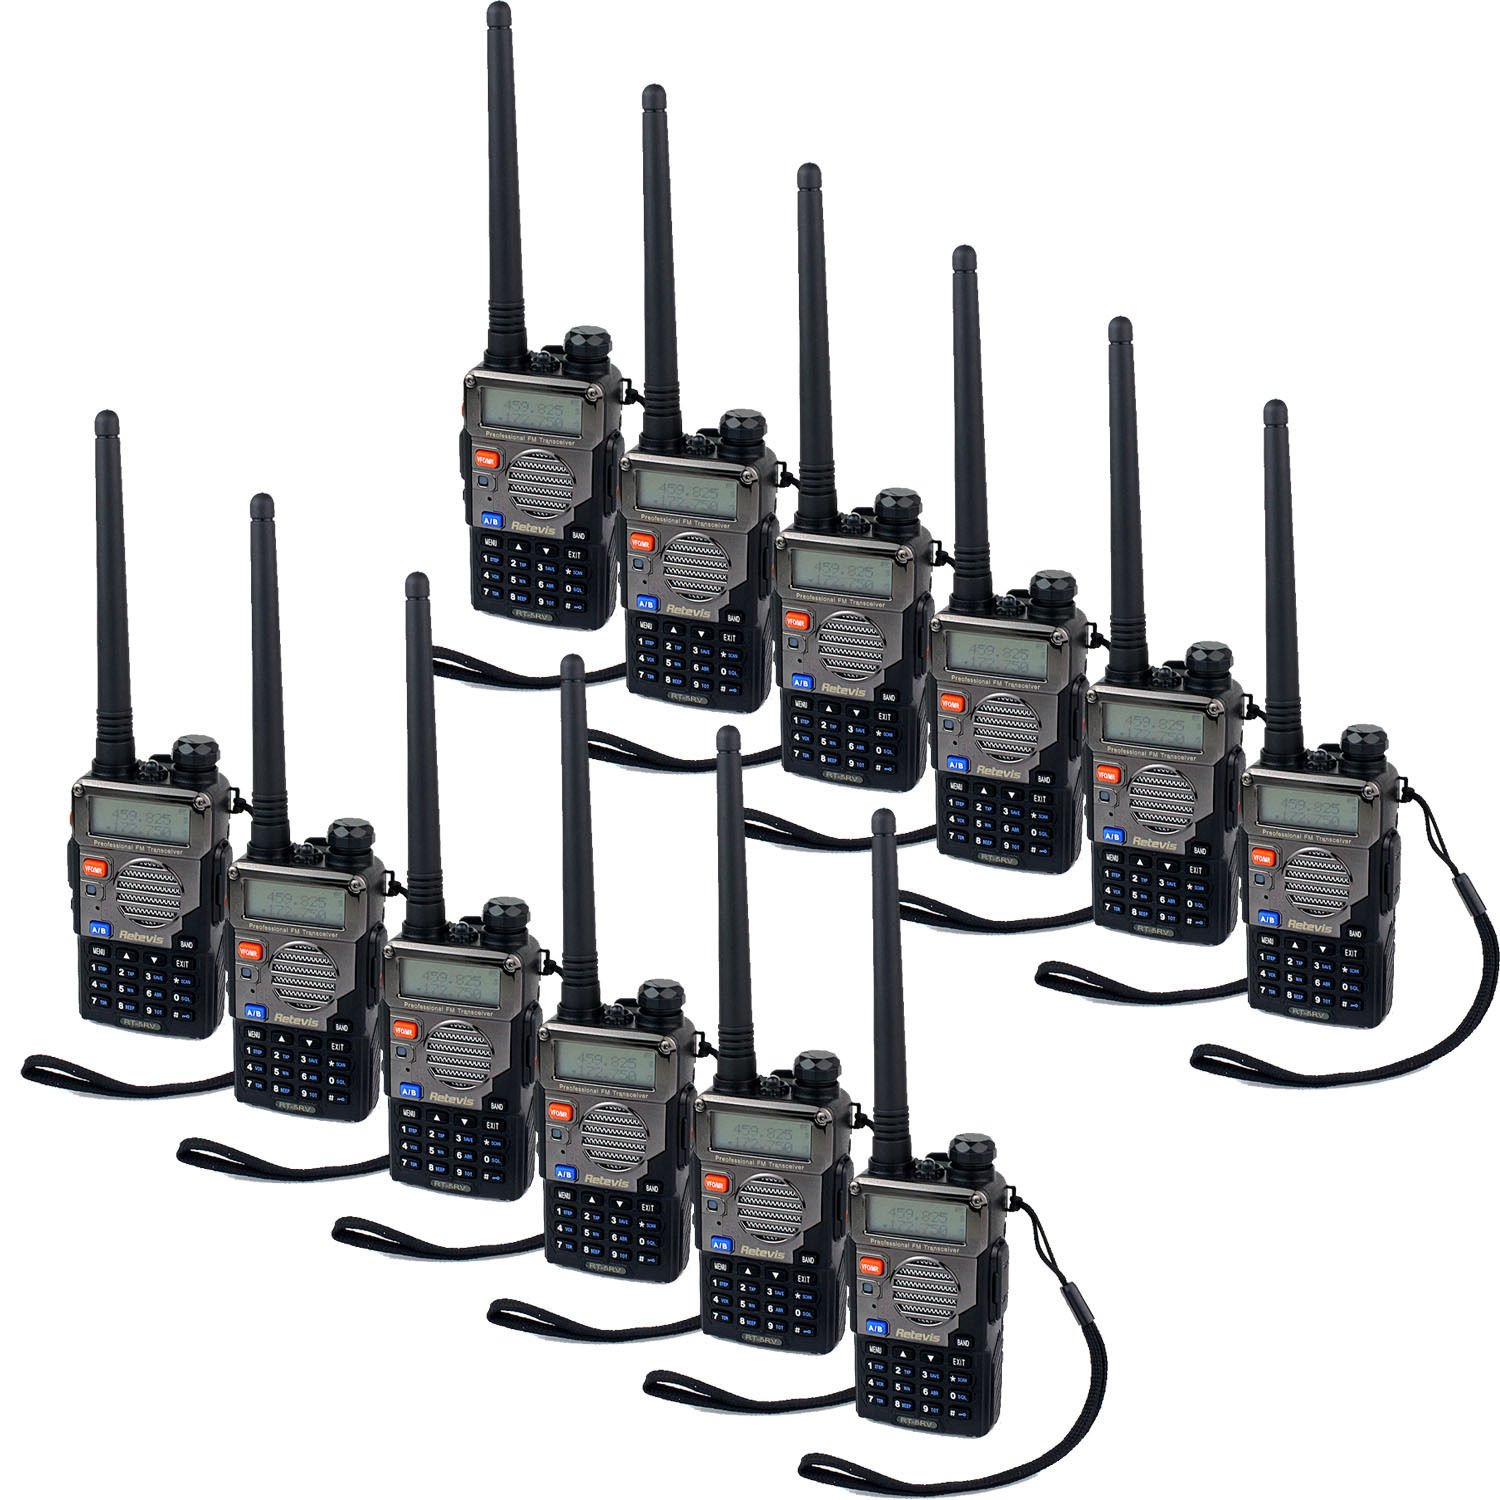 12x Retevis Rt 5rv Walkie Talkie 128ch Vhf Uhf Ctcss Dcs